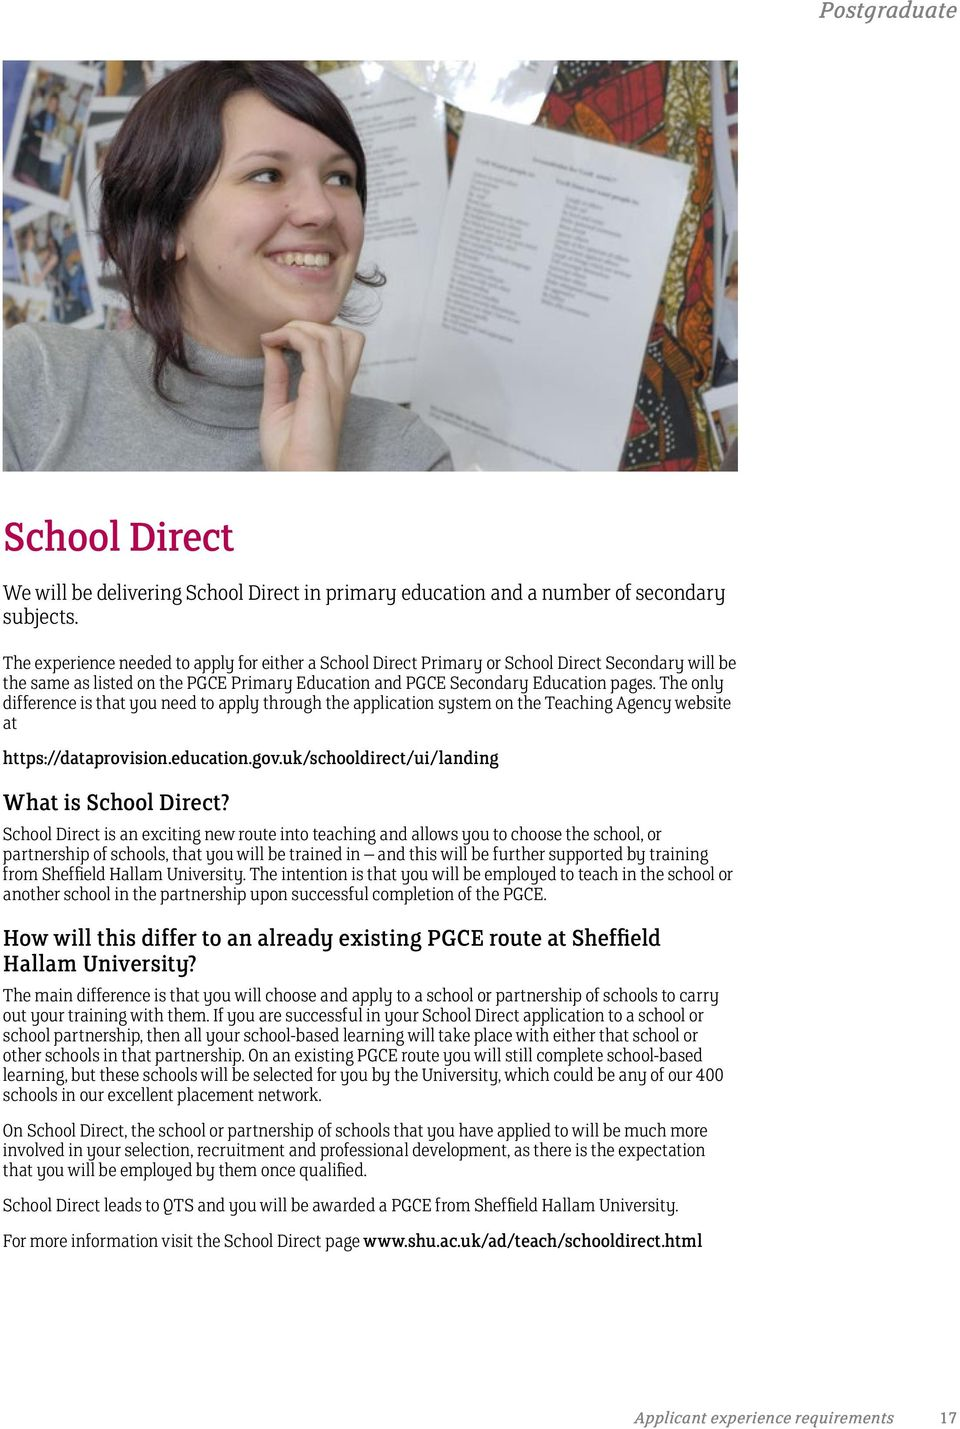 The only difference is that you need to apply through the application system on the Teaching Agency website at https://dataprovision.education.gov.uk/schooldirect/ui/landing What is School Direct?